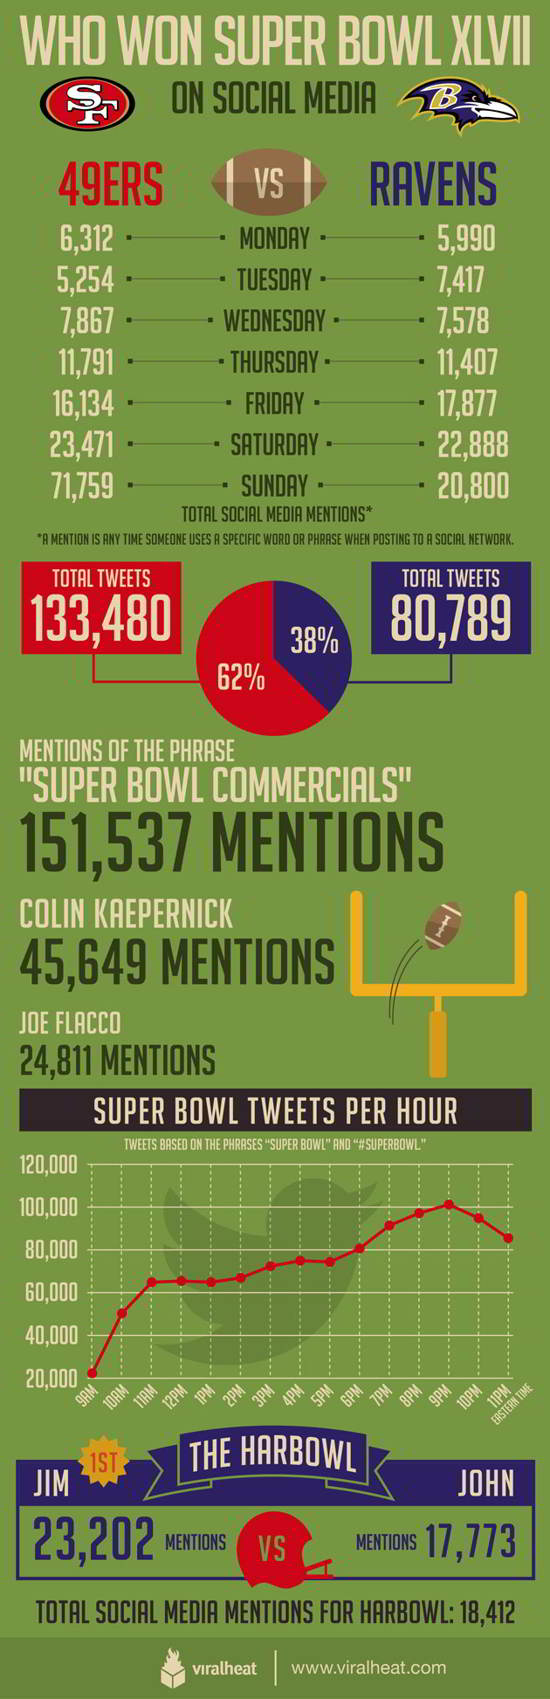 06 Who Won the Social Media Superbowl! Infographic